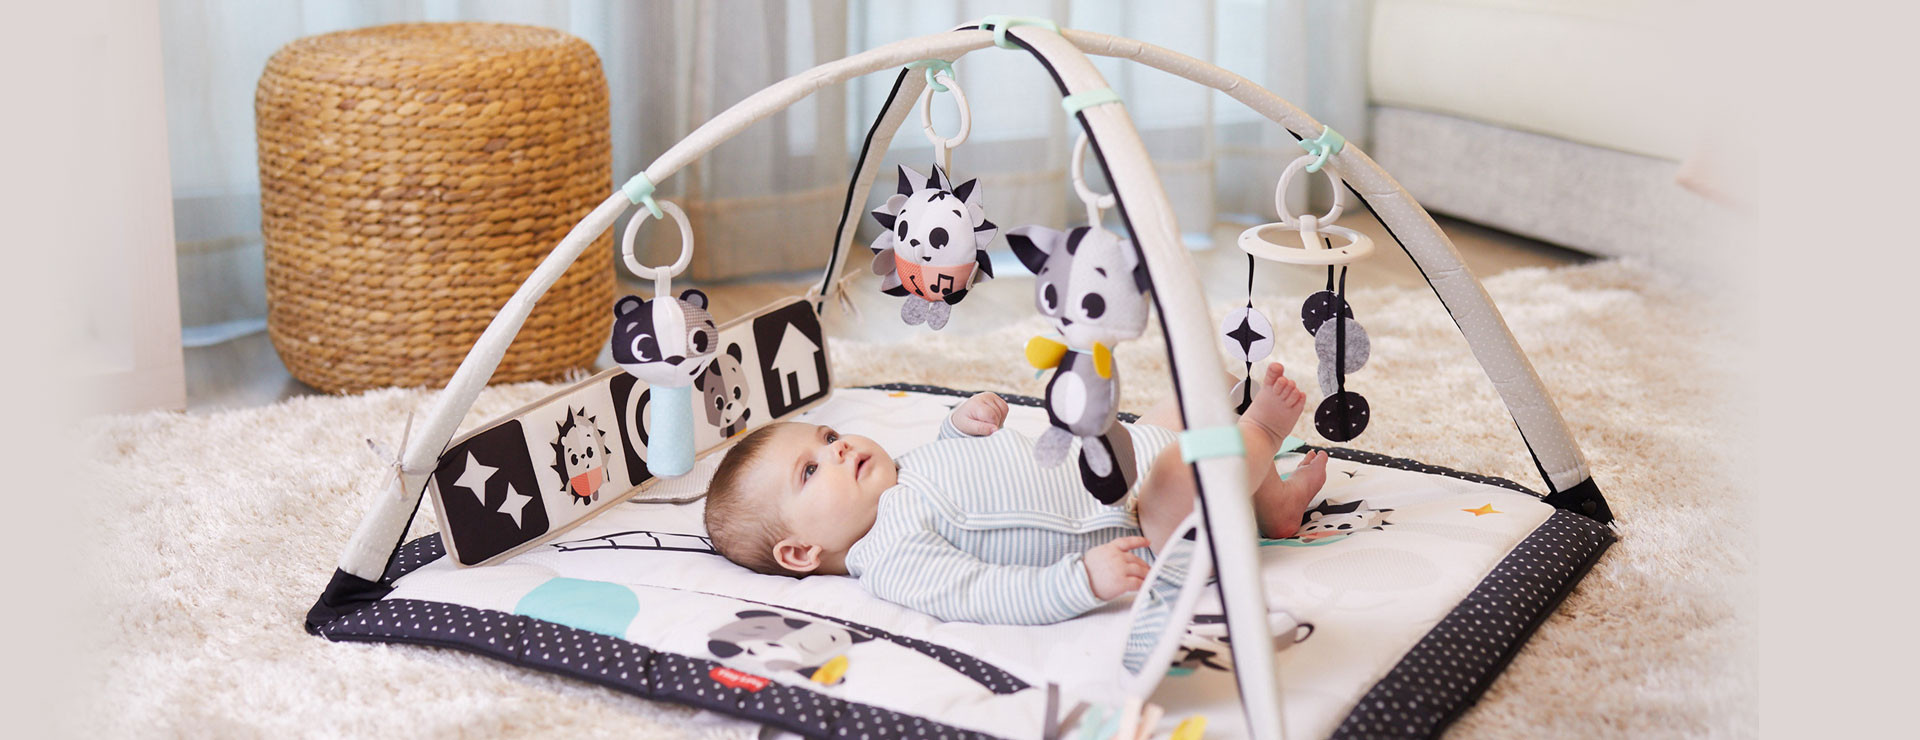 Overhead gym mode helps focus baby's attention